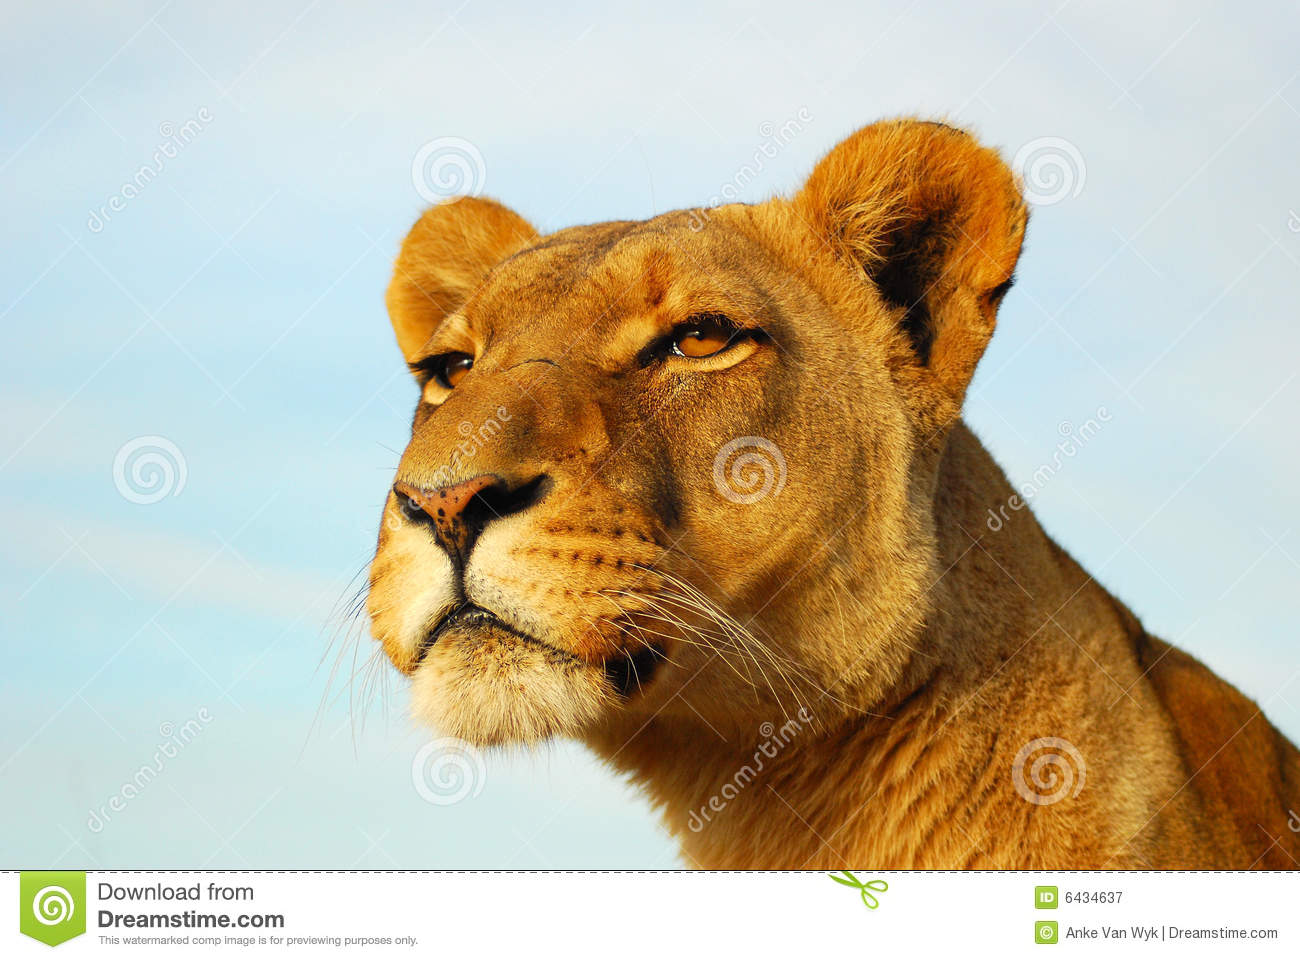 Lioness Royalty Free Stock Photography - Image: 6434637